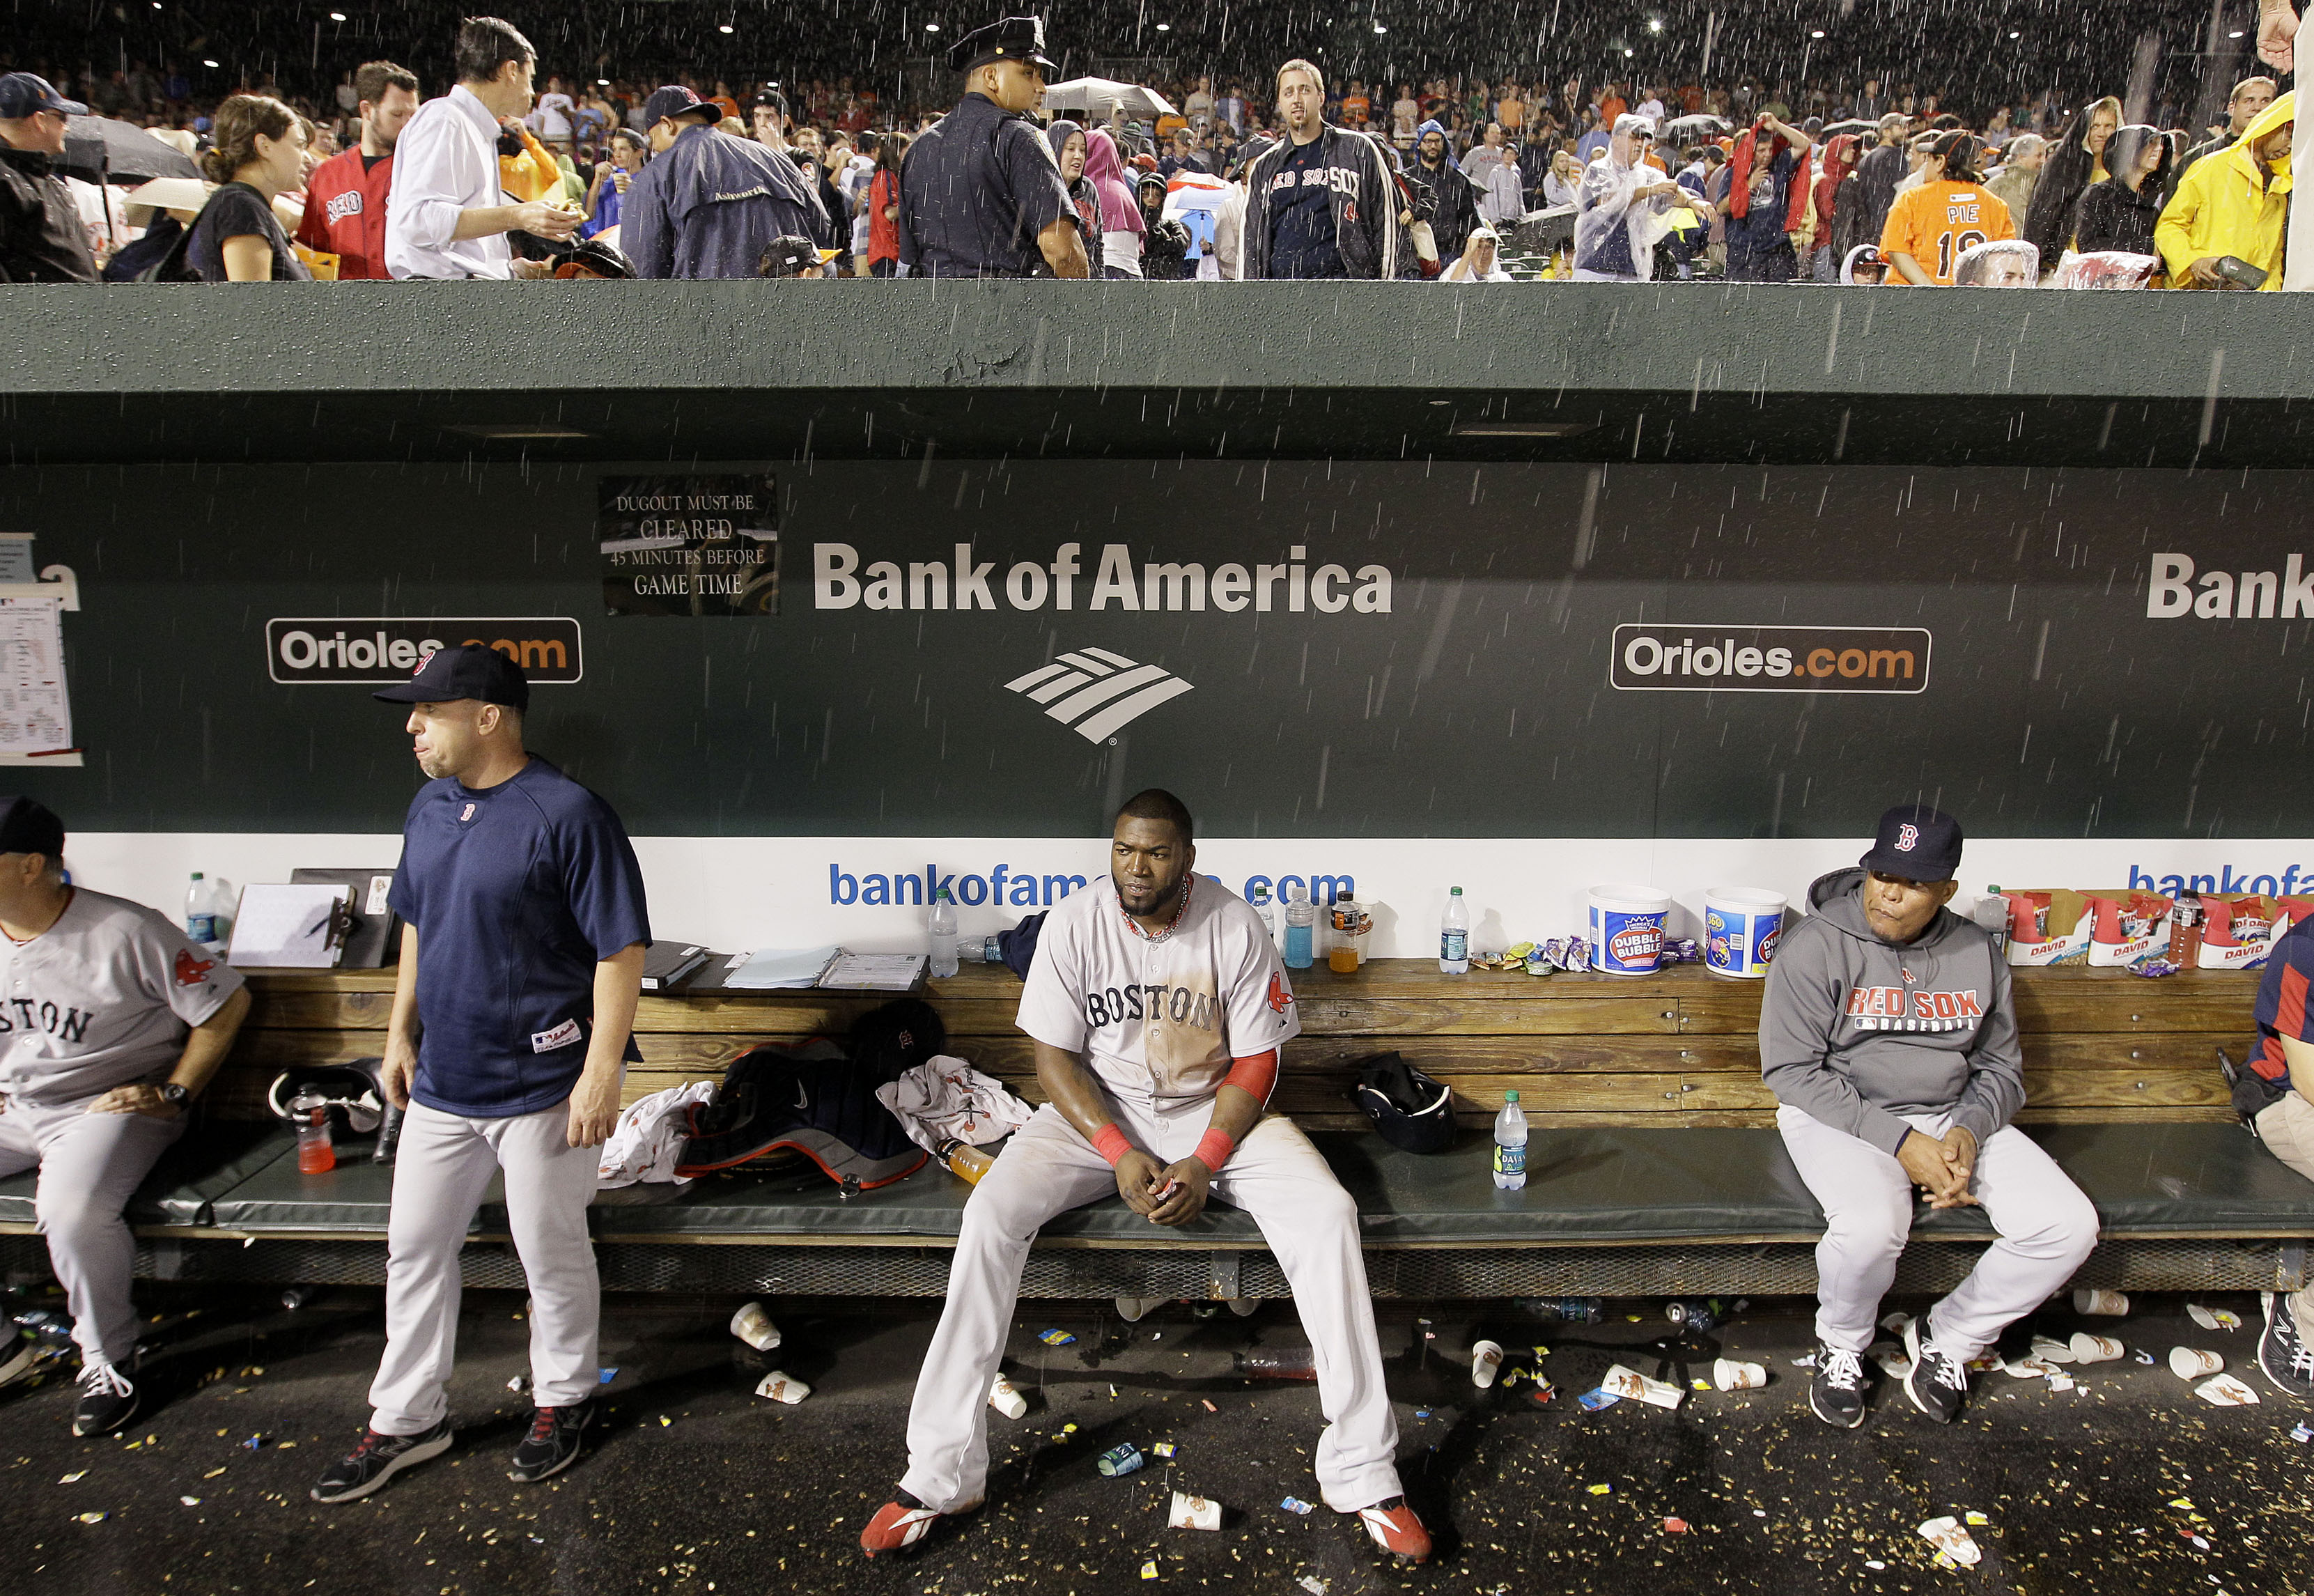 The Red Sox still haven't recovered from their collapse at the end of the last season. (Photo: Boston Globe)